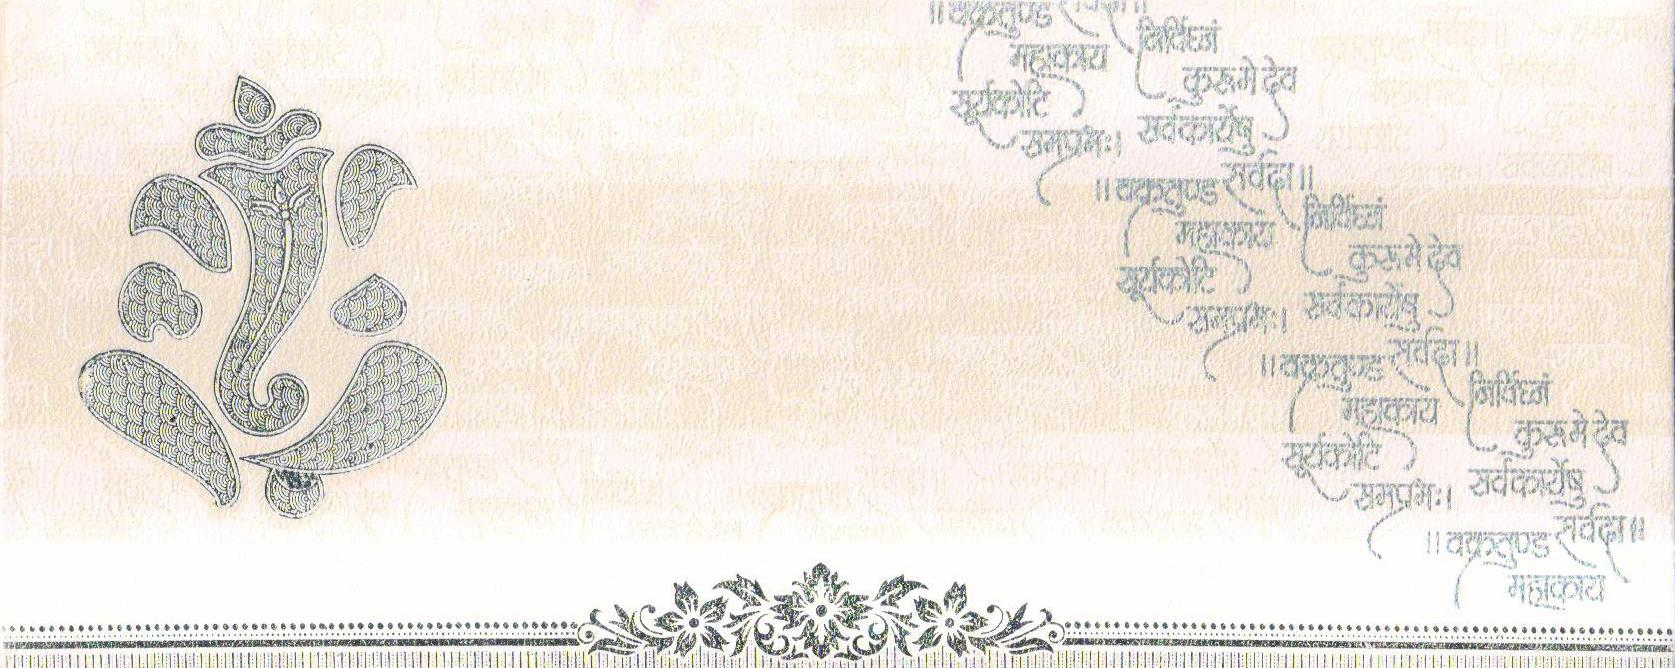 DESIGNER WEDDING CARDS IN PATNA